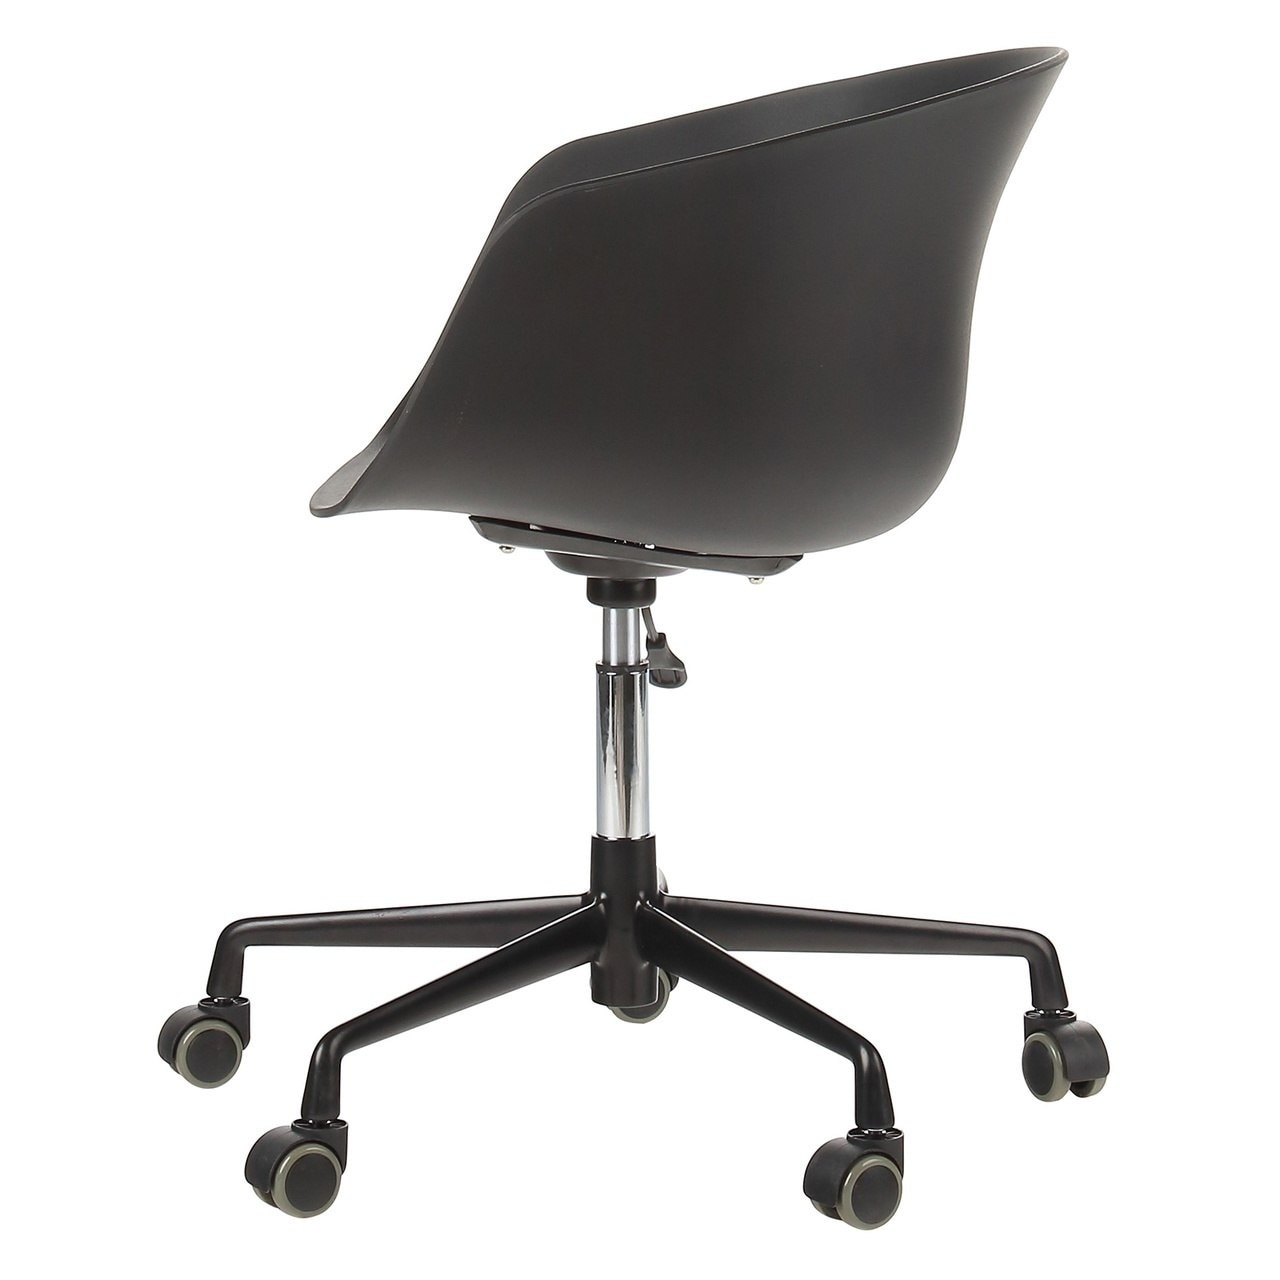 Danish Mid Century Modern Office Chair With Black Aluminum Frame On Free Shipping Today 22926334